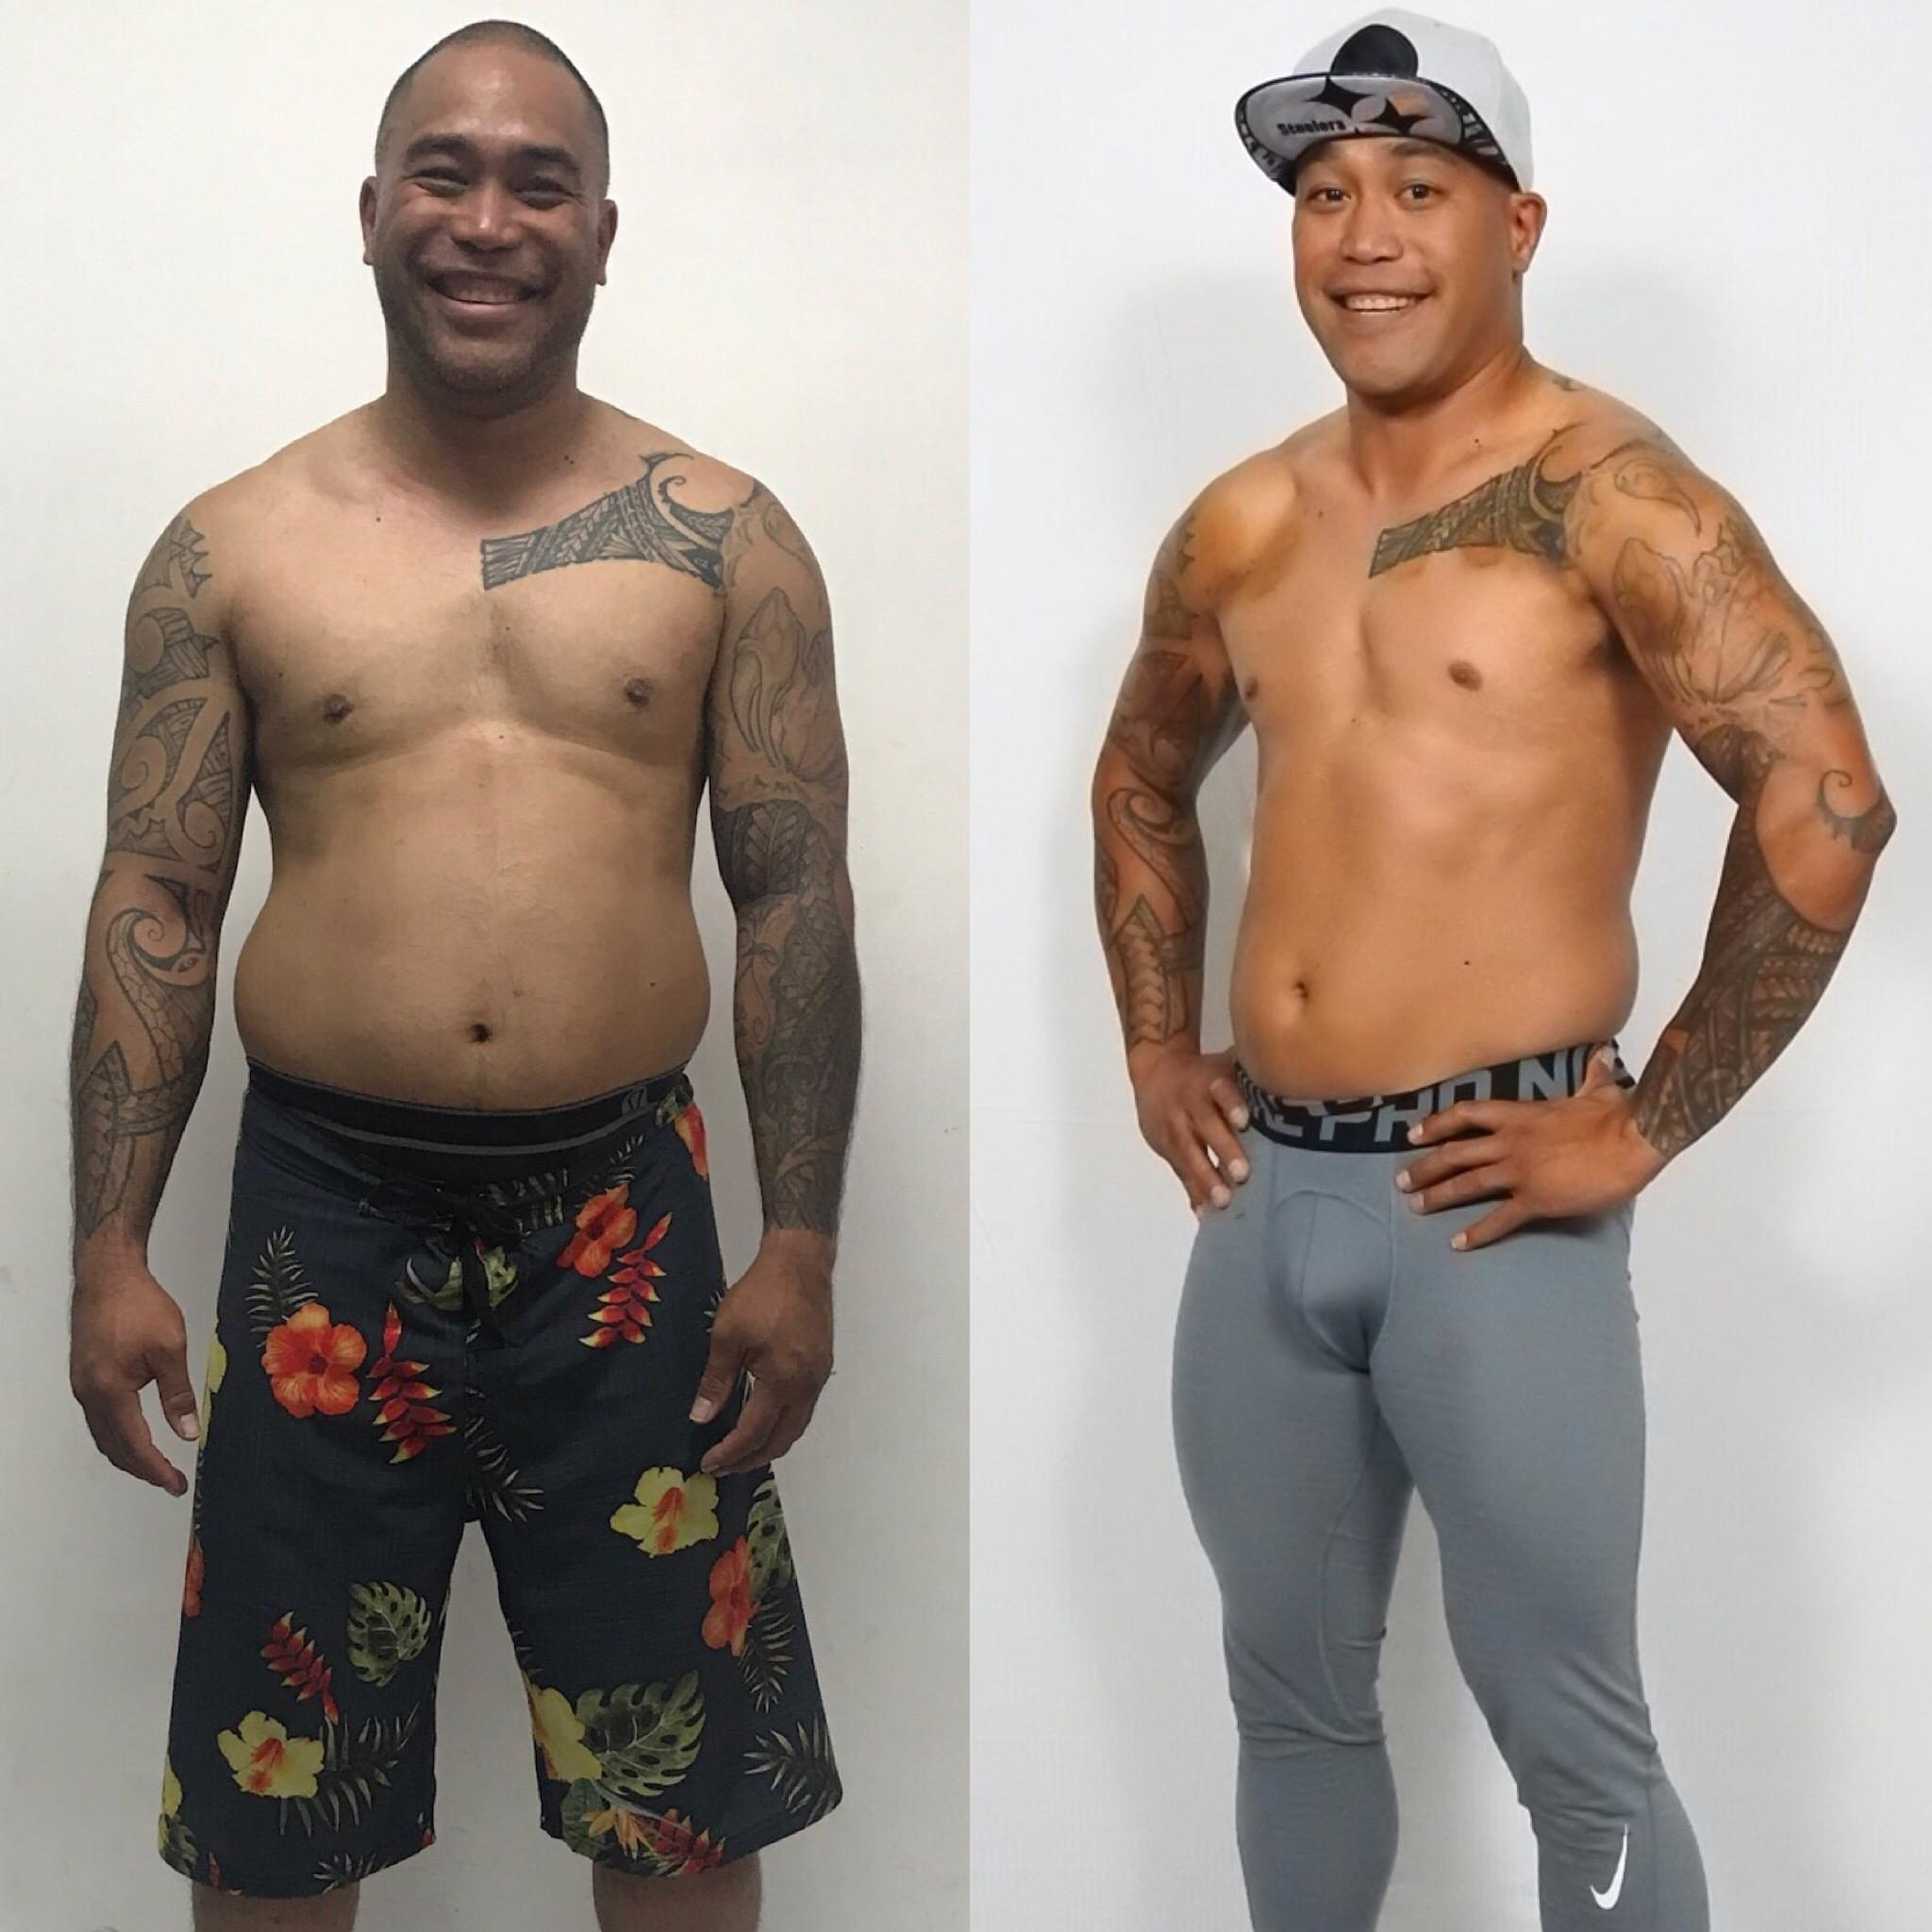 Don't think you can get your health back? Read Brandon's Story... - I'm in the BEST shape since high school! I lowered my blood pressure five years ago, during my first TRANSFORM Challenge with Keoni. I had borderline hypertension and was on the verge of losing my CDL license for work! Now, my health is on point, I've met amazing people and CrossFit is my lifestyle.-Brandon Nakanelua